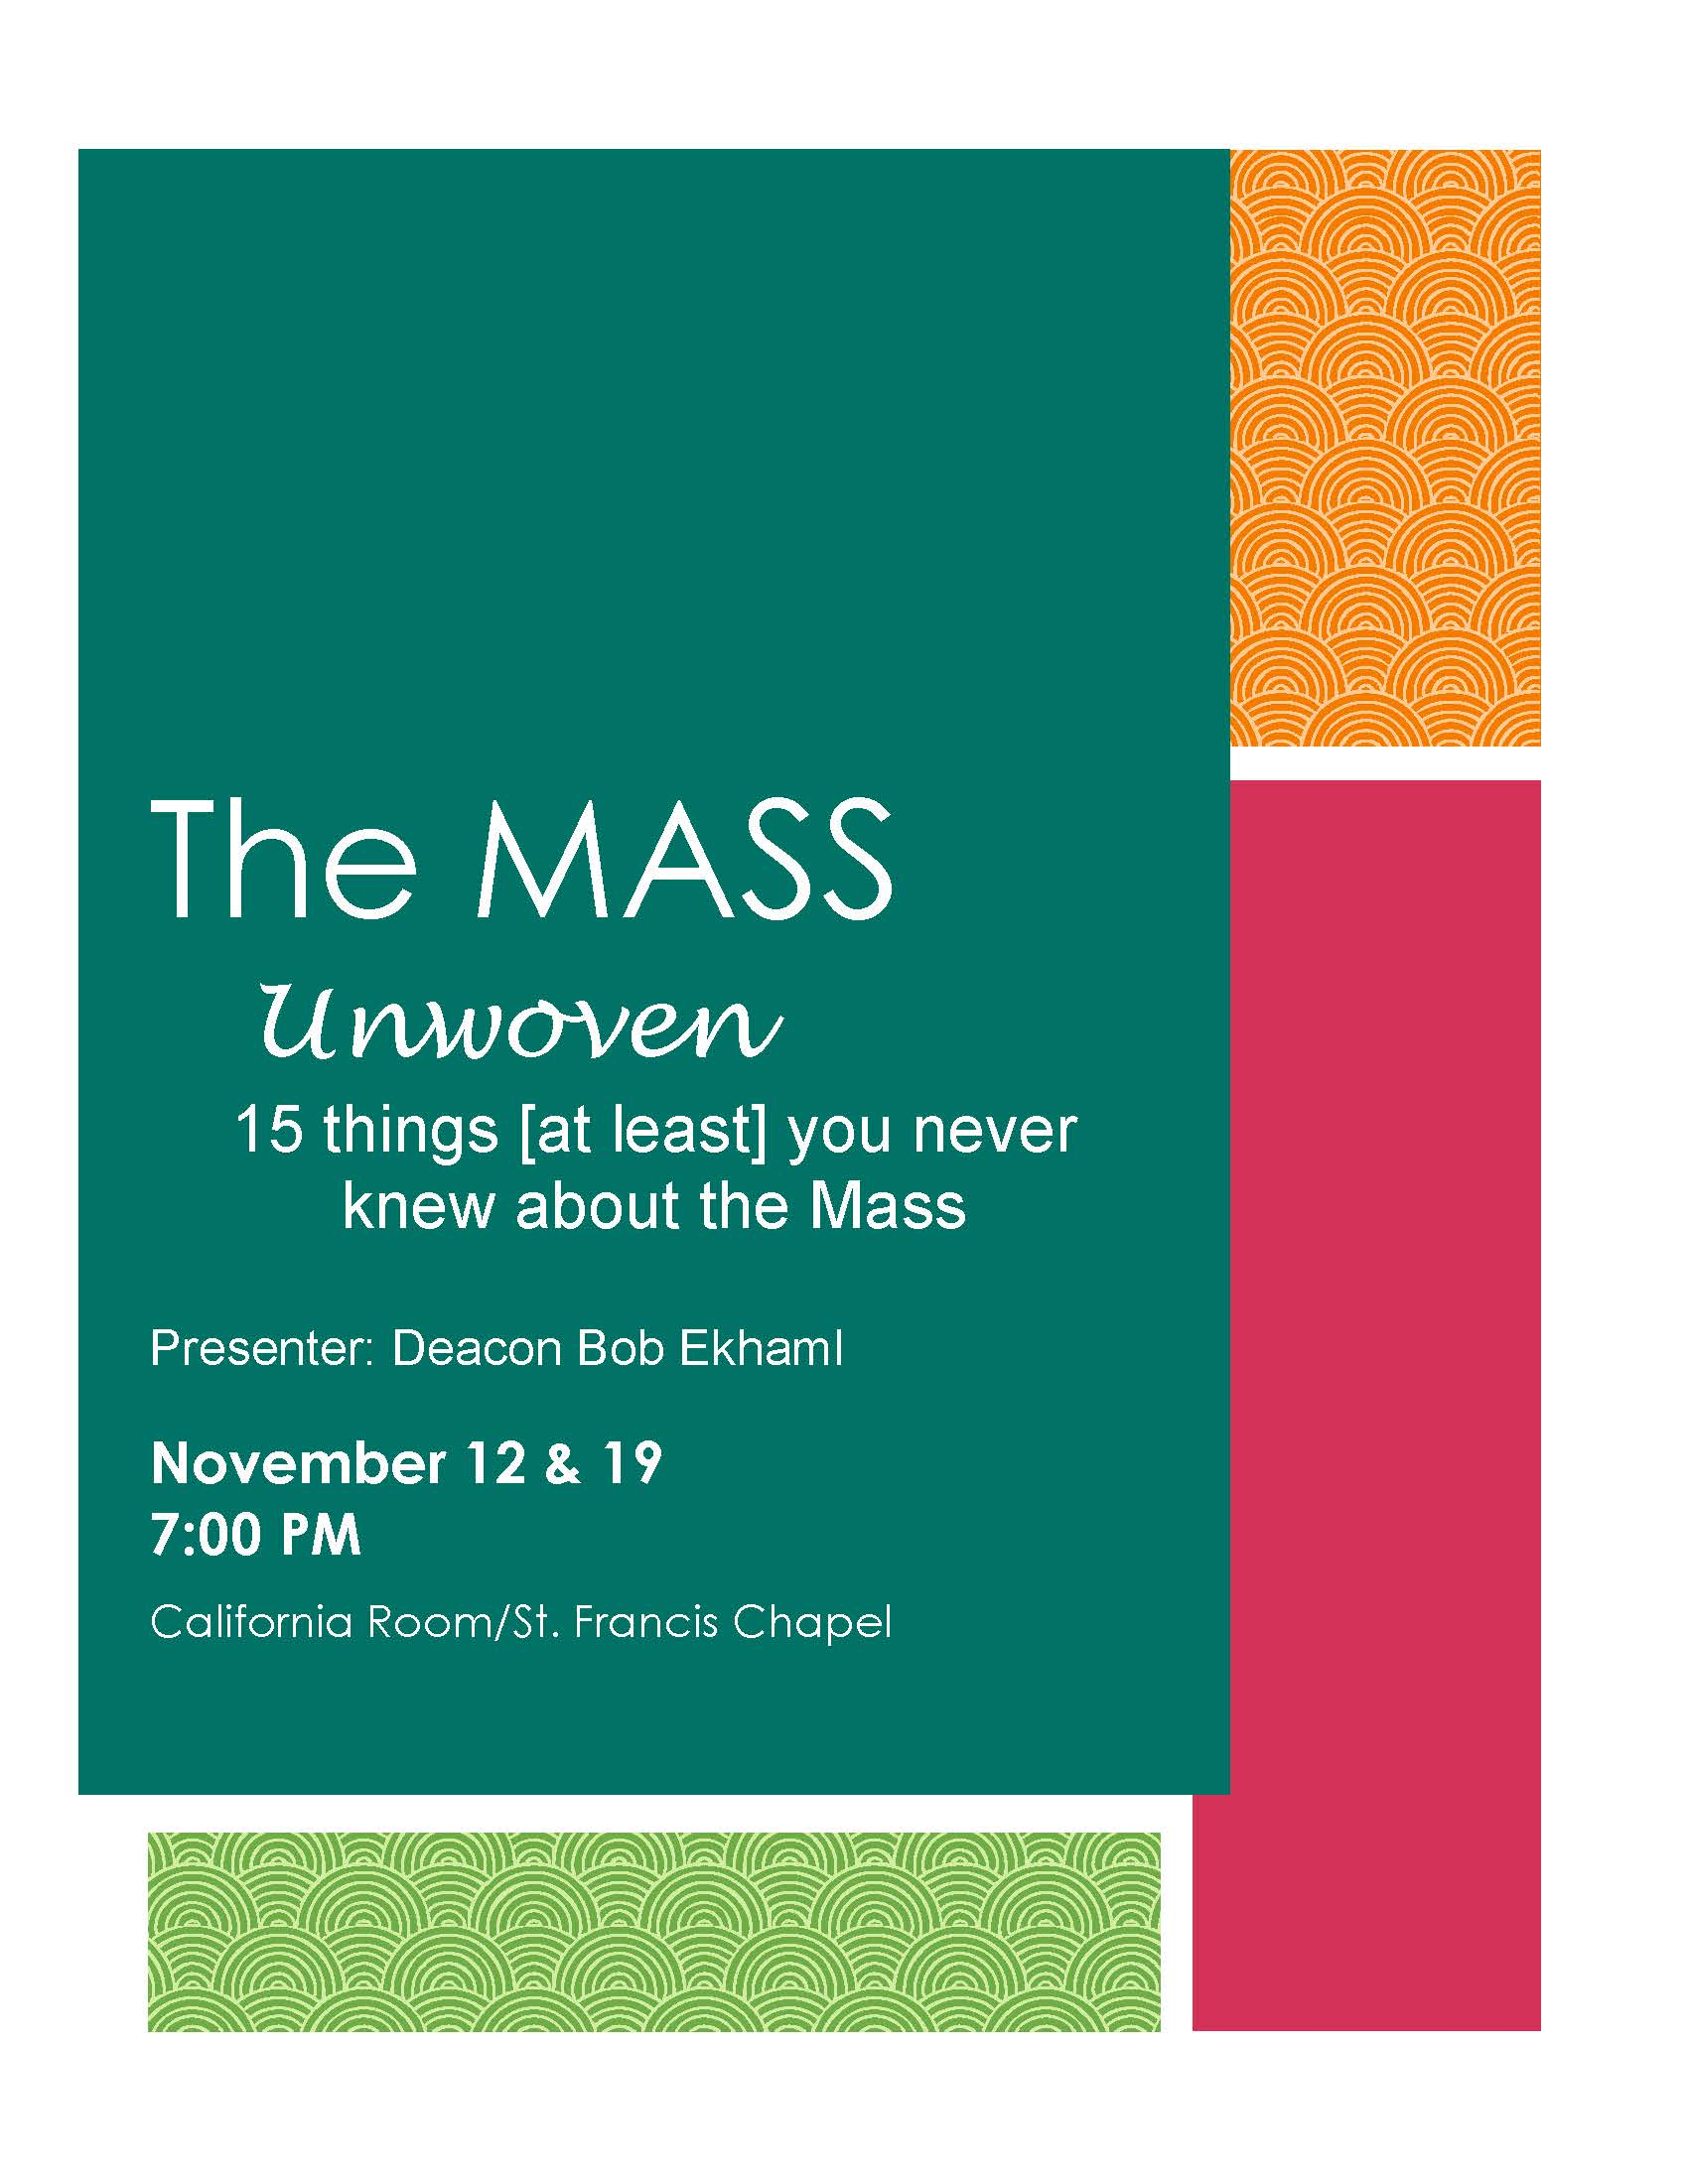 The Mass; 15 things (at least!) you never knew about the Mass!